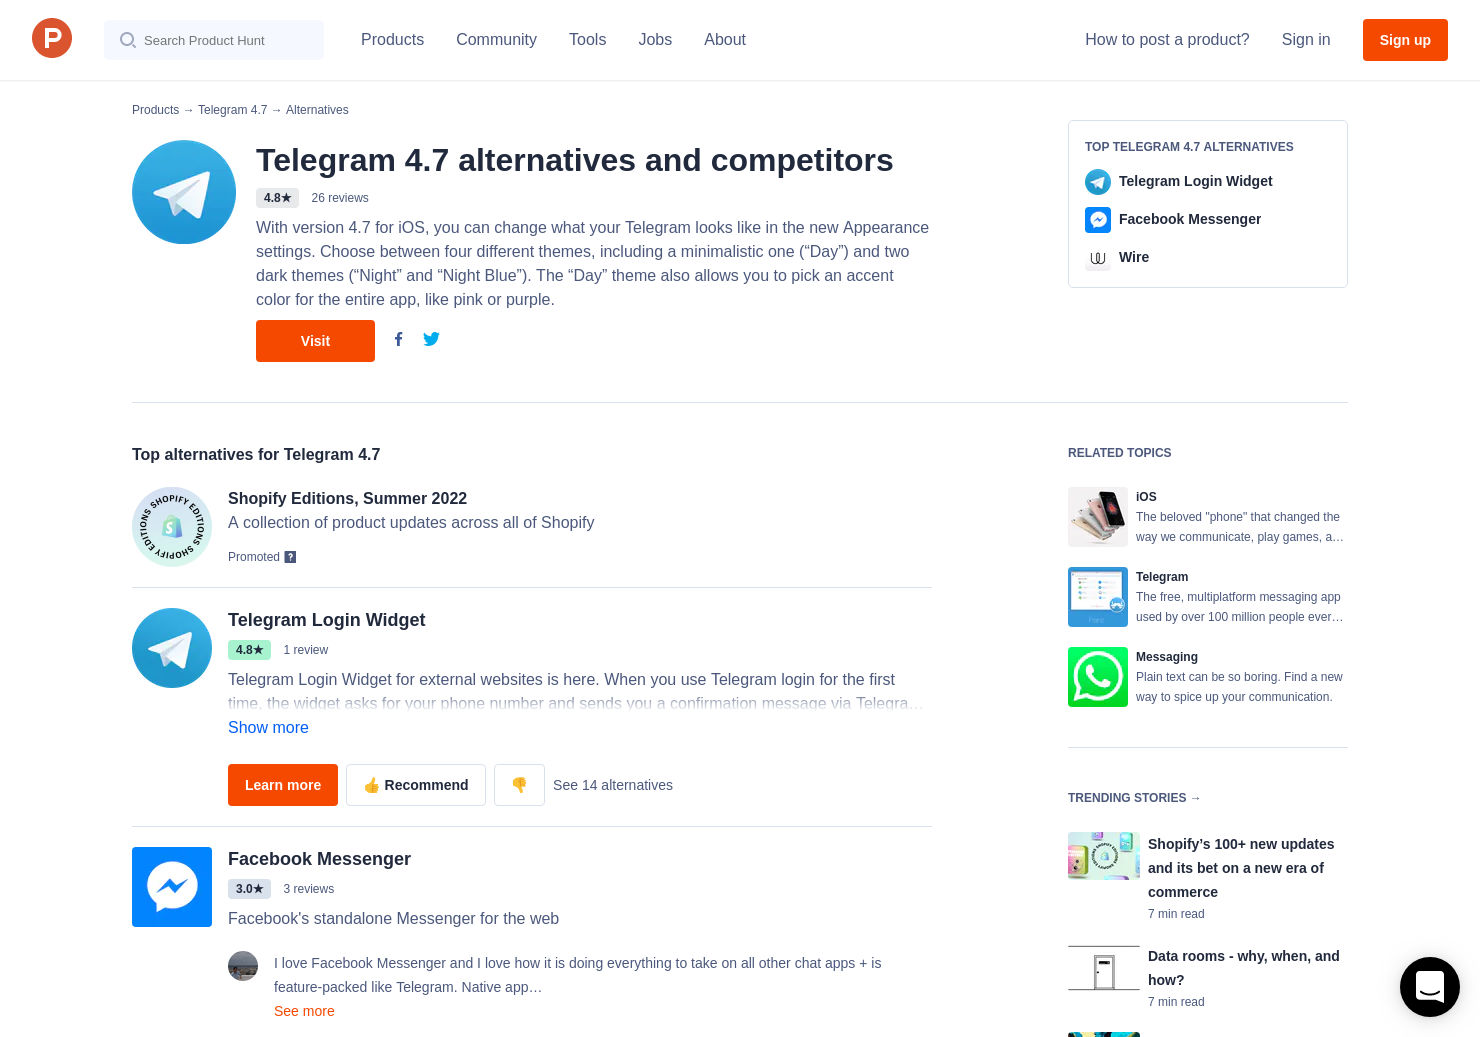 18 Alternatives to Telegram 4 7 for iPhone | Product Hunt